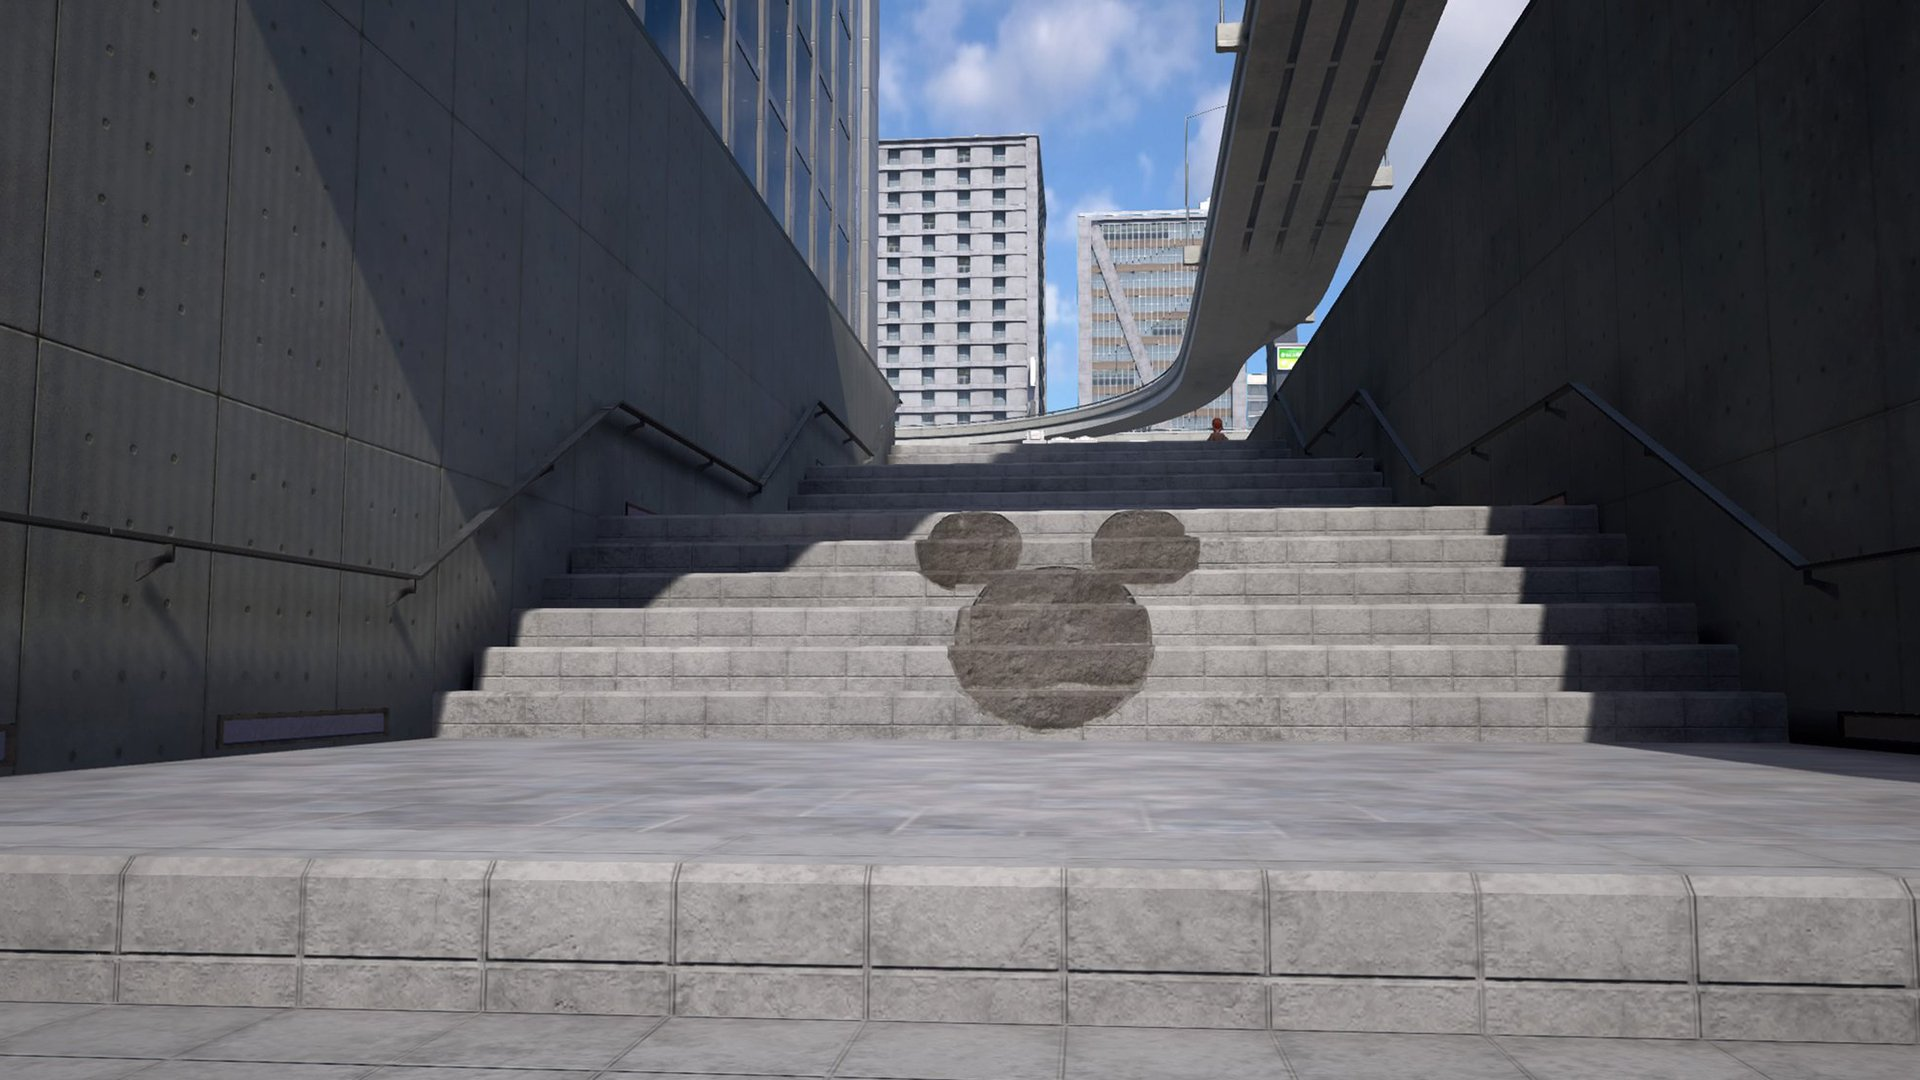 Kingdom Hearts 3 San Fransokyo Lucky Emblem Locations Superparent